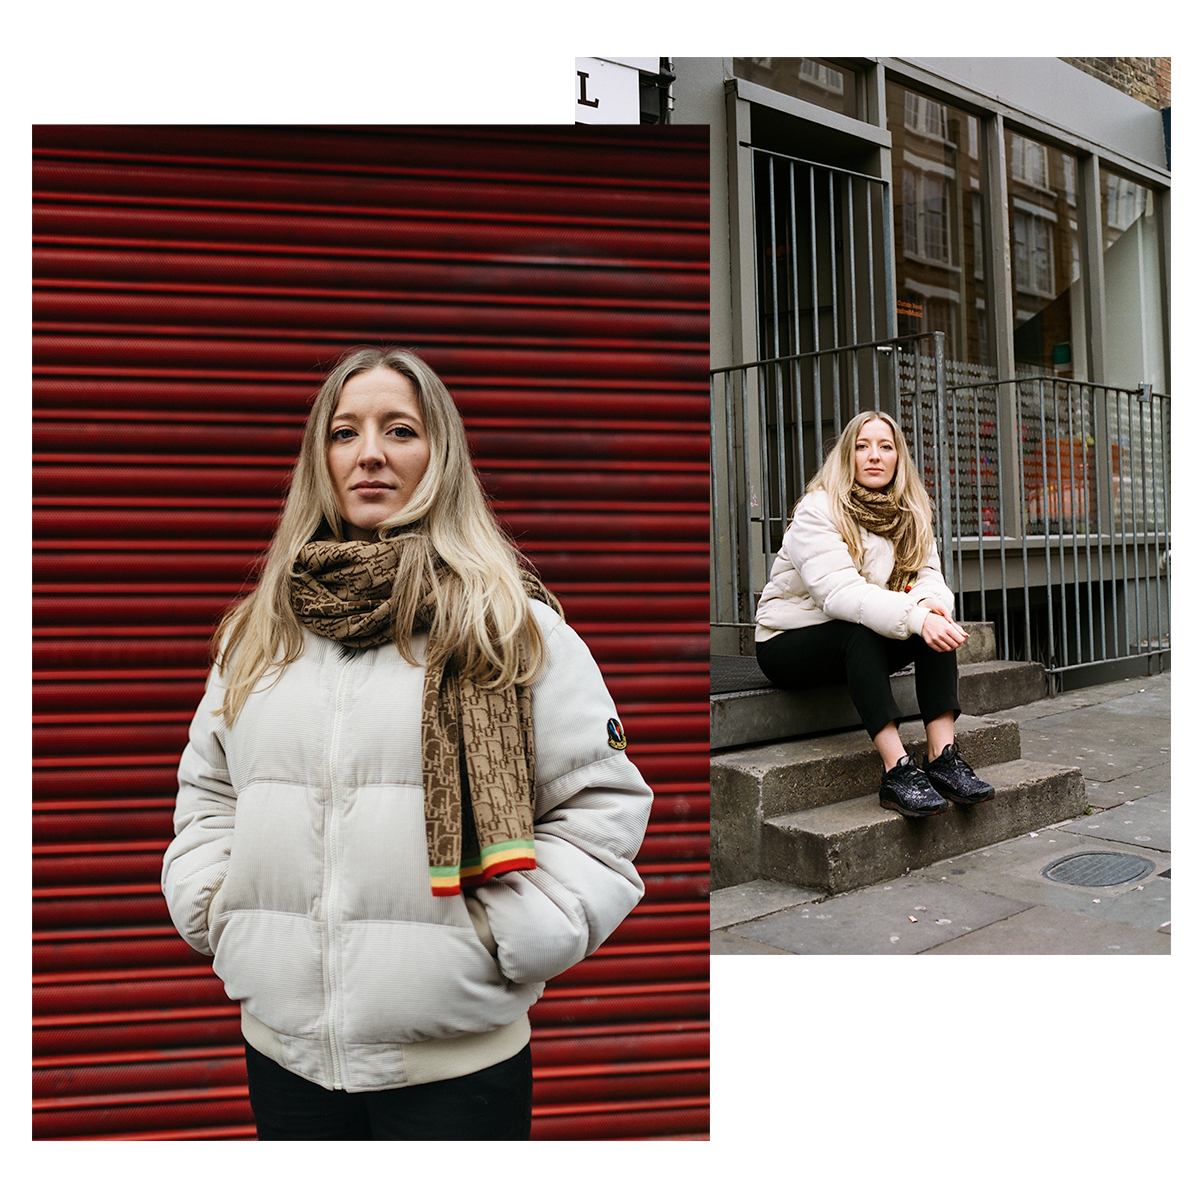 Lauren Sissons   Graphic designer, photographer, and co-creator / founder of Bare Vintage